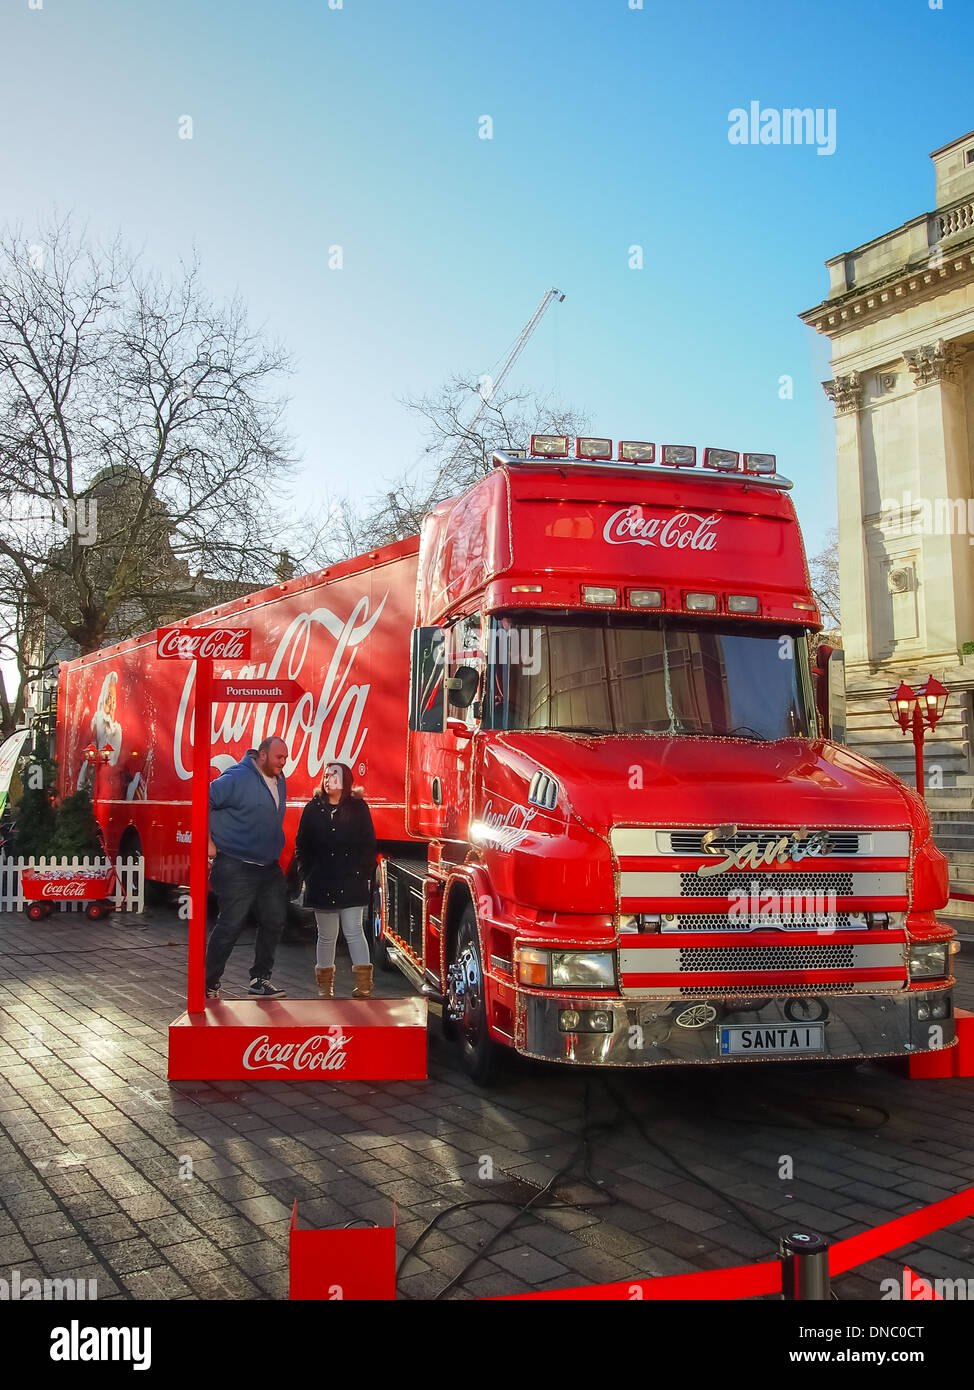 a couple prepare for a photograph with the Coca Cola Truck in front of Portsmouth Guildhall, Hampshire. England - Stock Image